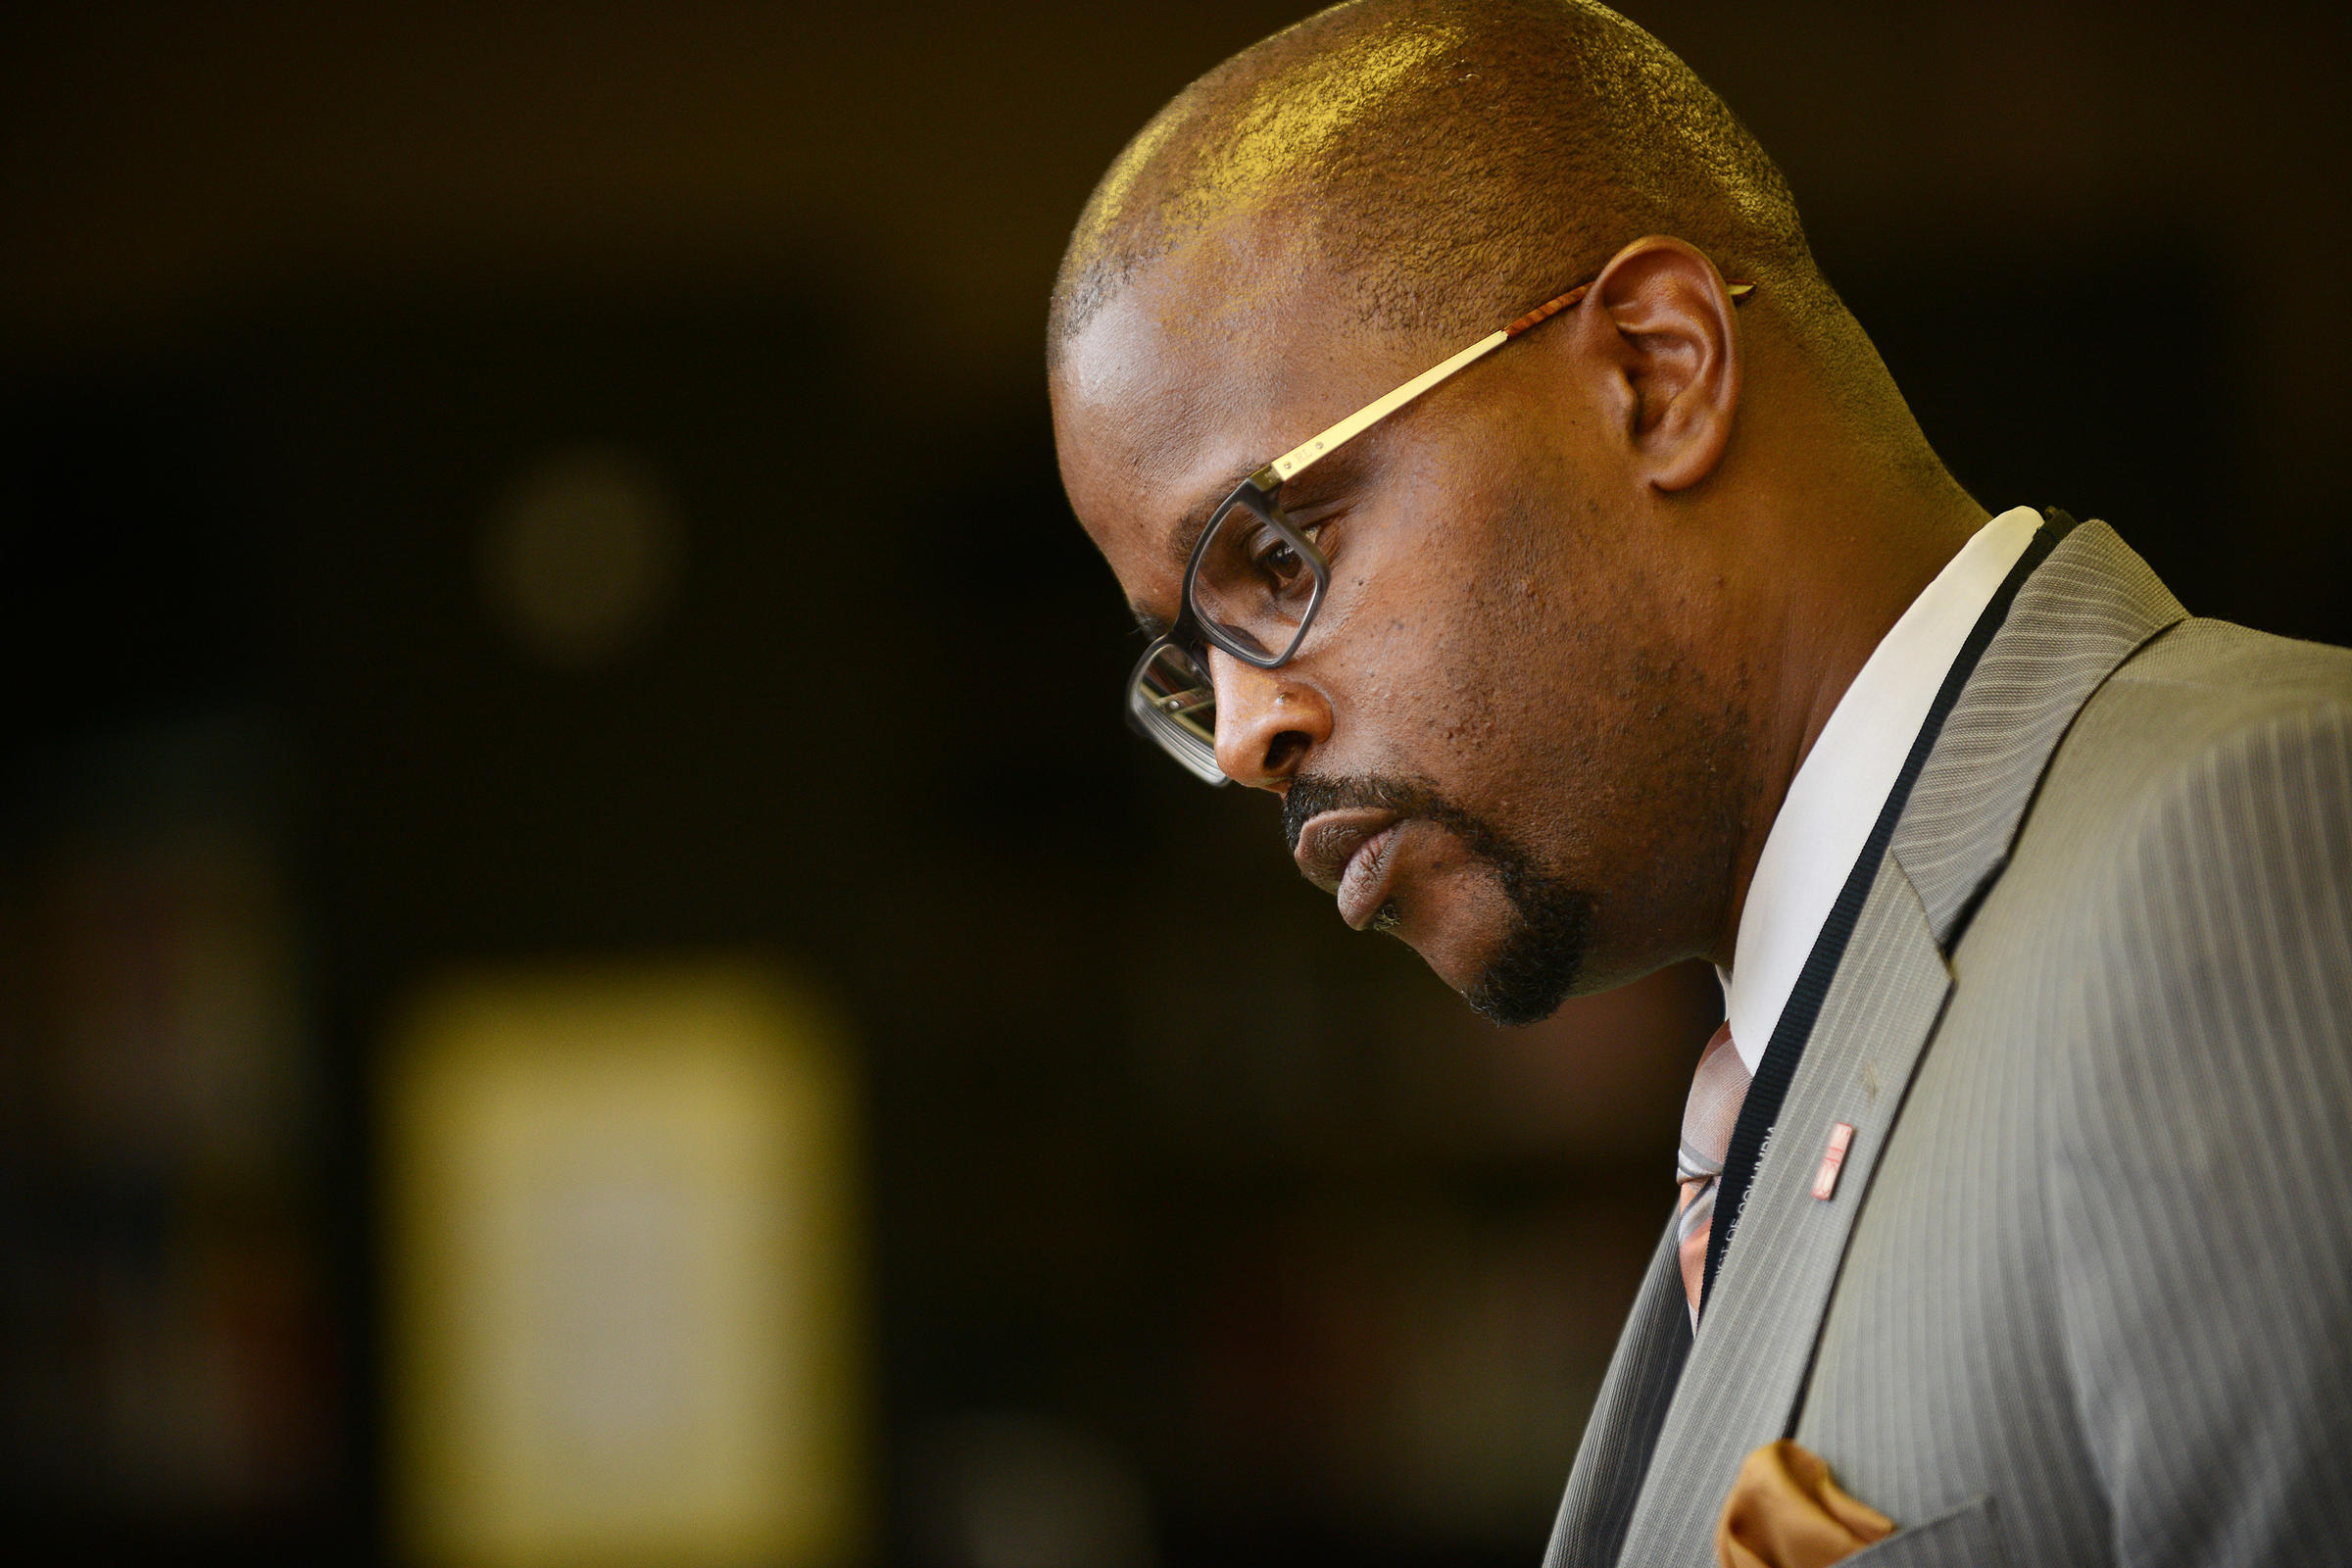 Former Oakland schools chief ousted from DC post